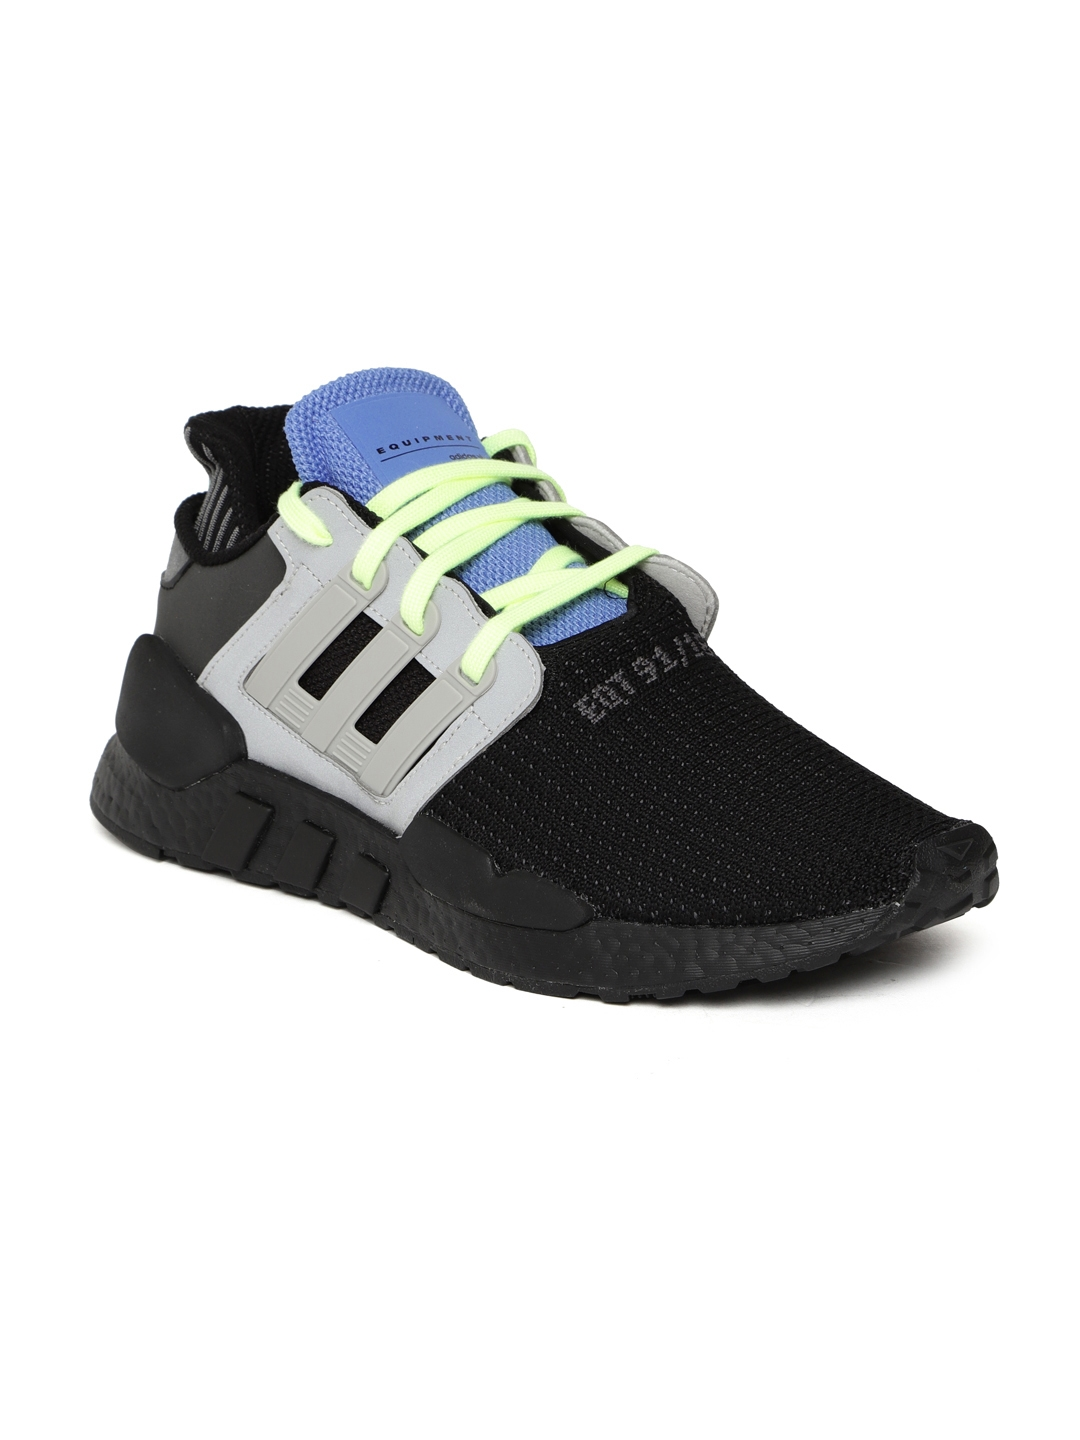 buy online 7460c c3376 ADIDAS Originals Men Black   Grey EQT SUPPORT 91 18 Sneakers